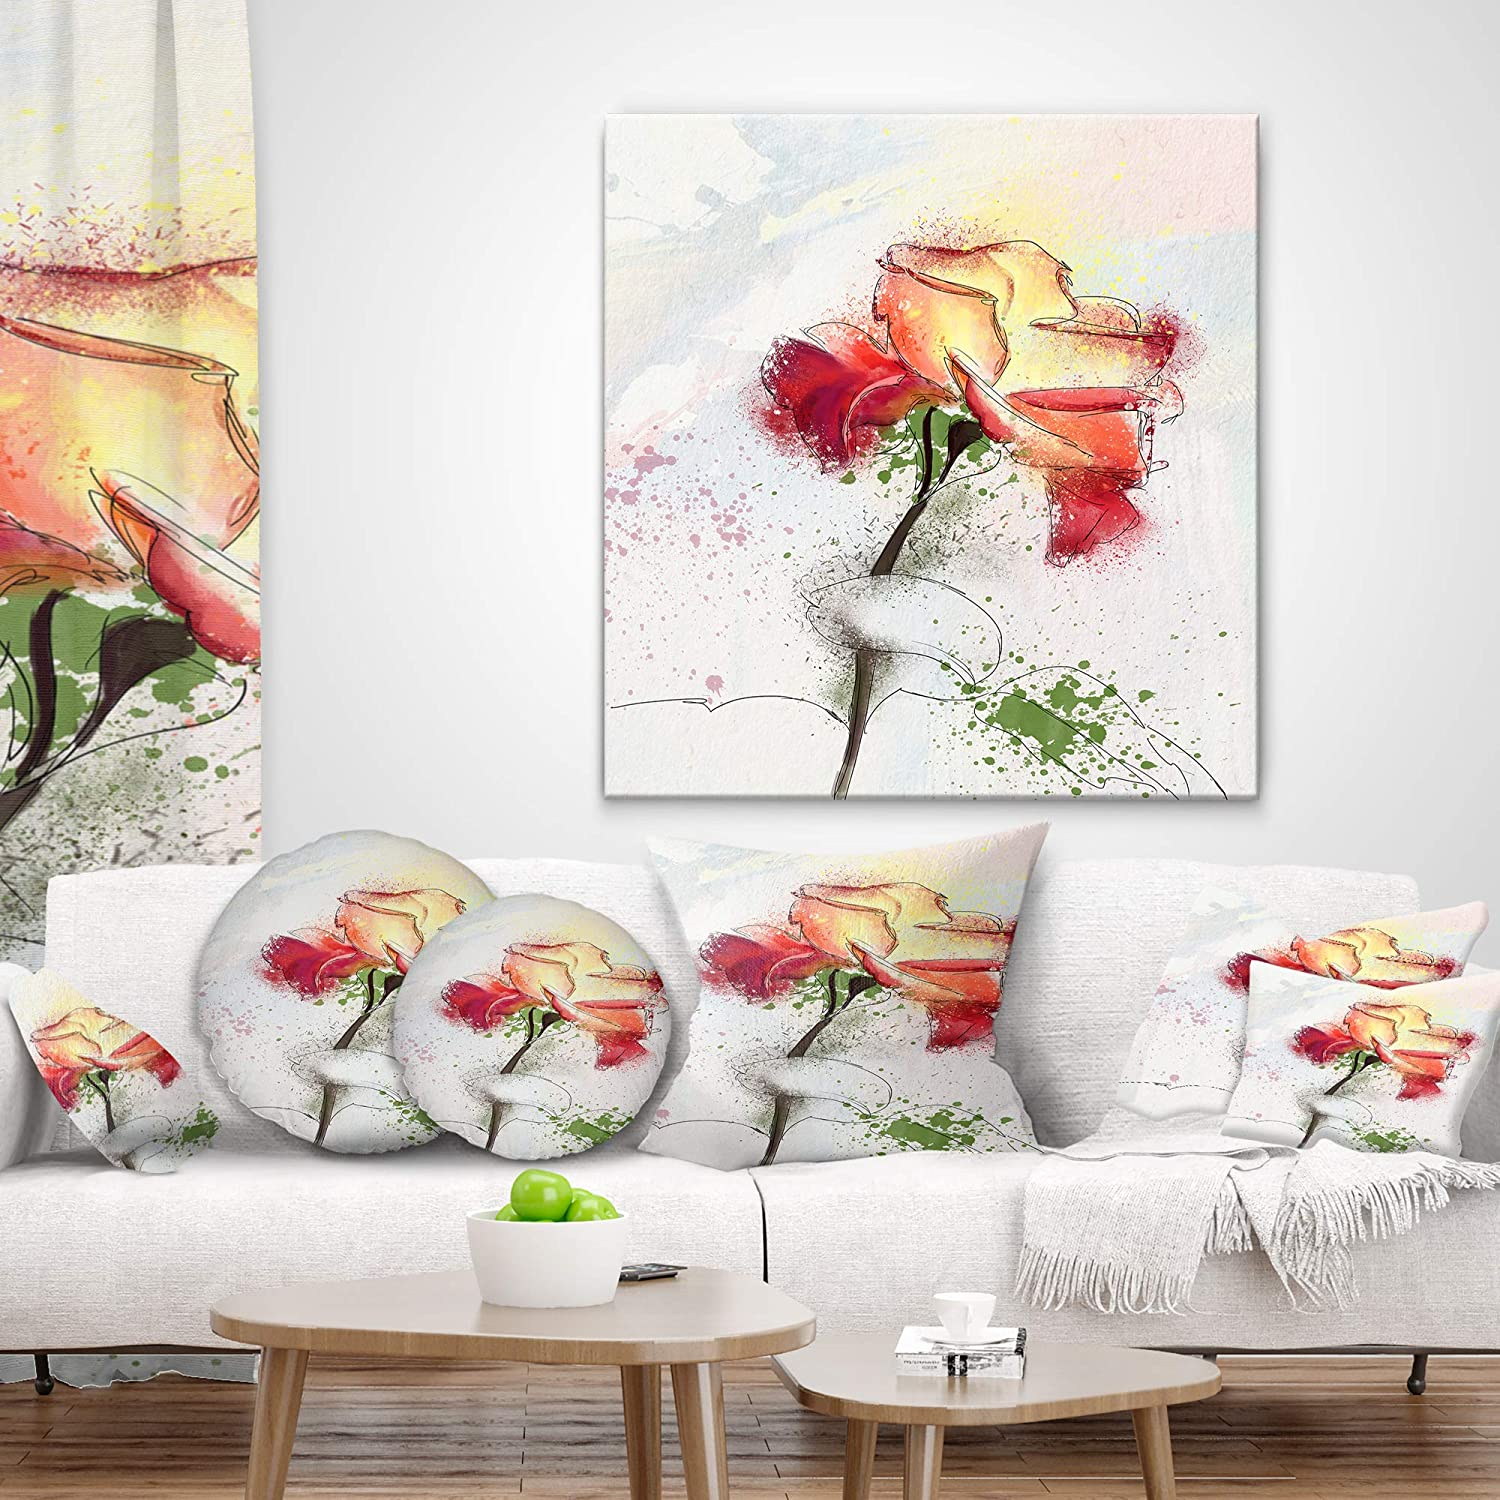 in Designart CU13671-26-26 Beautiful Rose Illustration Drawing Floral Cushion Cover for Living Room x 26 in Sofa Throw Pillow 26 in Insert Printed On Both Side